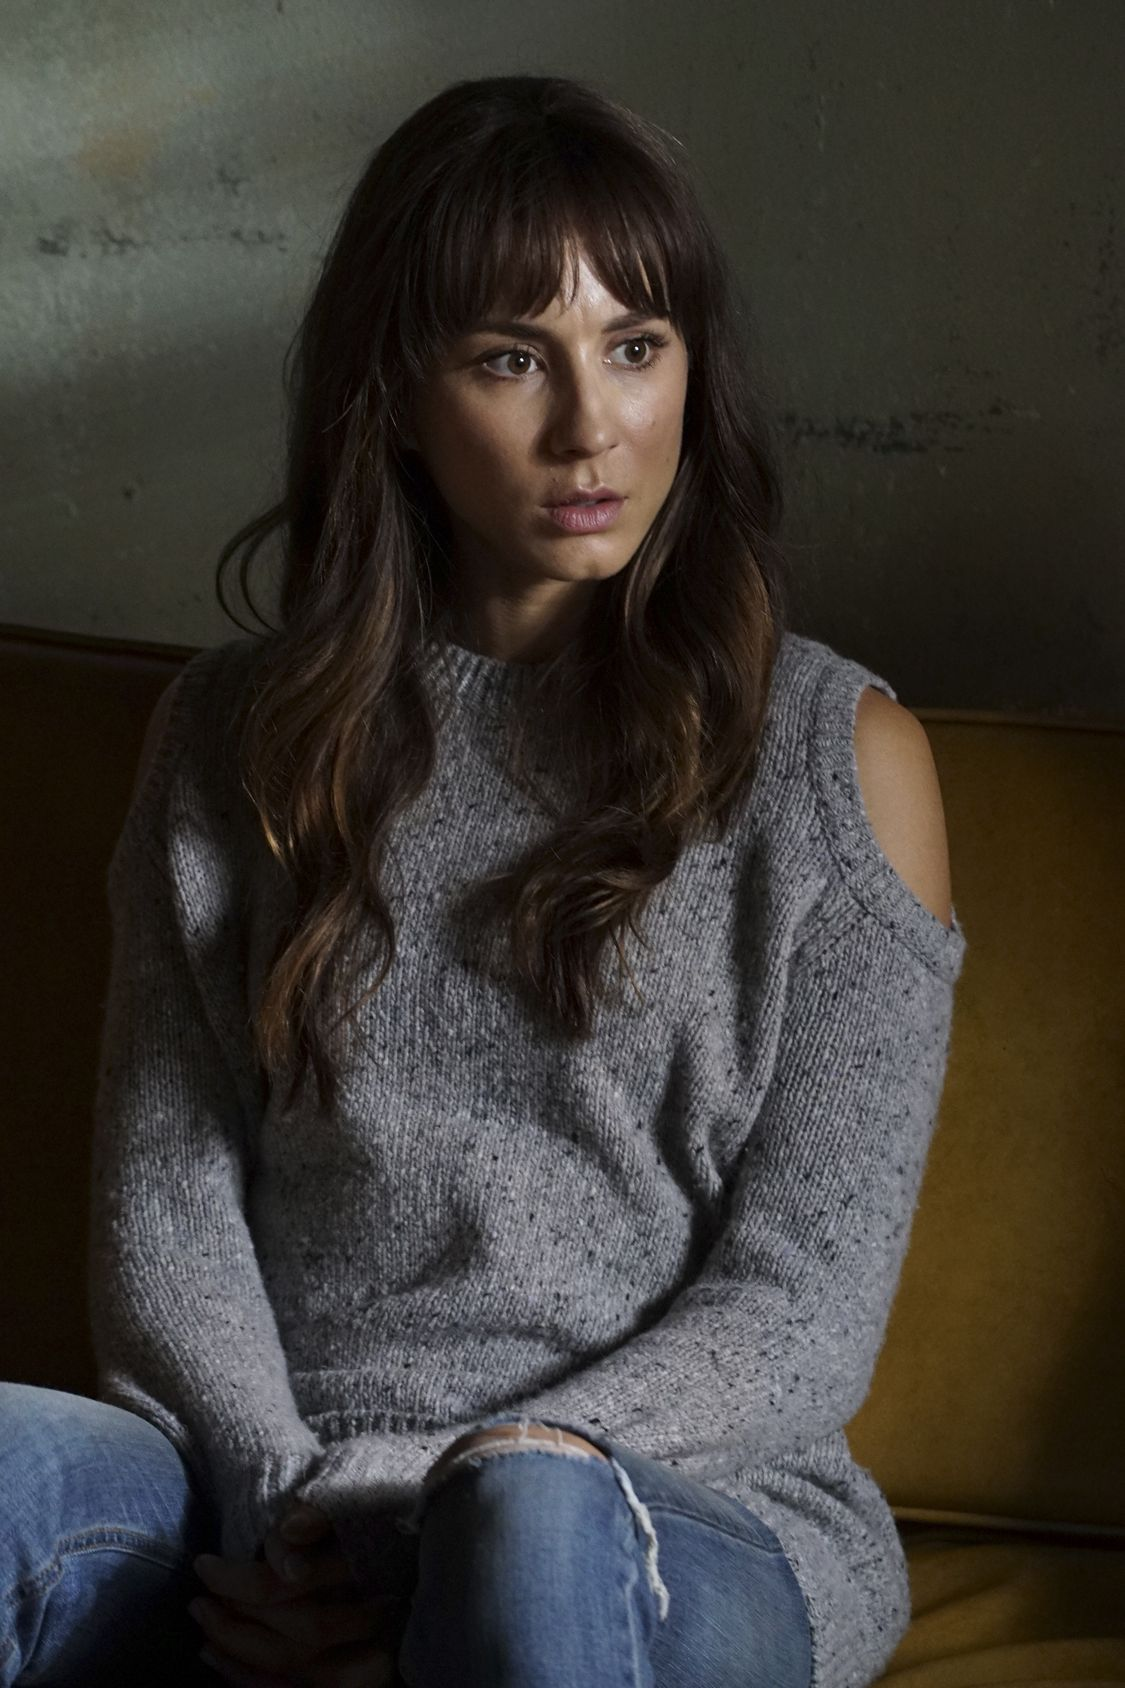 """PRETTY LITTLE LIARS - """"Exes and OMGs"""" - Emily's ex Paige unexpectedly returns to Rosewood, as does the ominous Mrs. Grunwald, in """"Exes and OMGs,"""" an all-new episode of Freeform's hit original series """"Pretty Little Liars,"""" airing TUESDAY, AUGUST 16 (8:00 - 9:00 p.m. EDT), the new name for ABC Family. (Freeform/Byron Cohen) TROIAN BELLISARIO"""